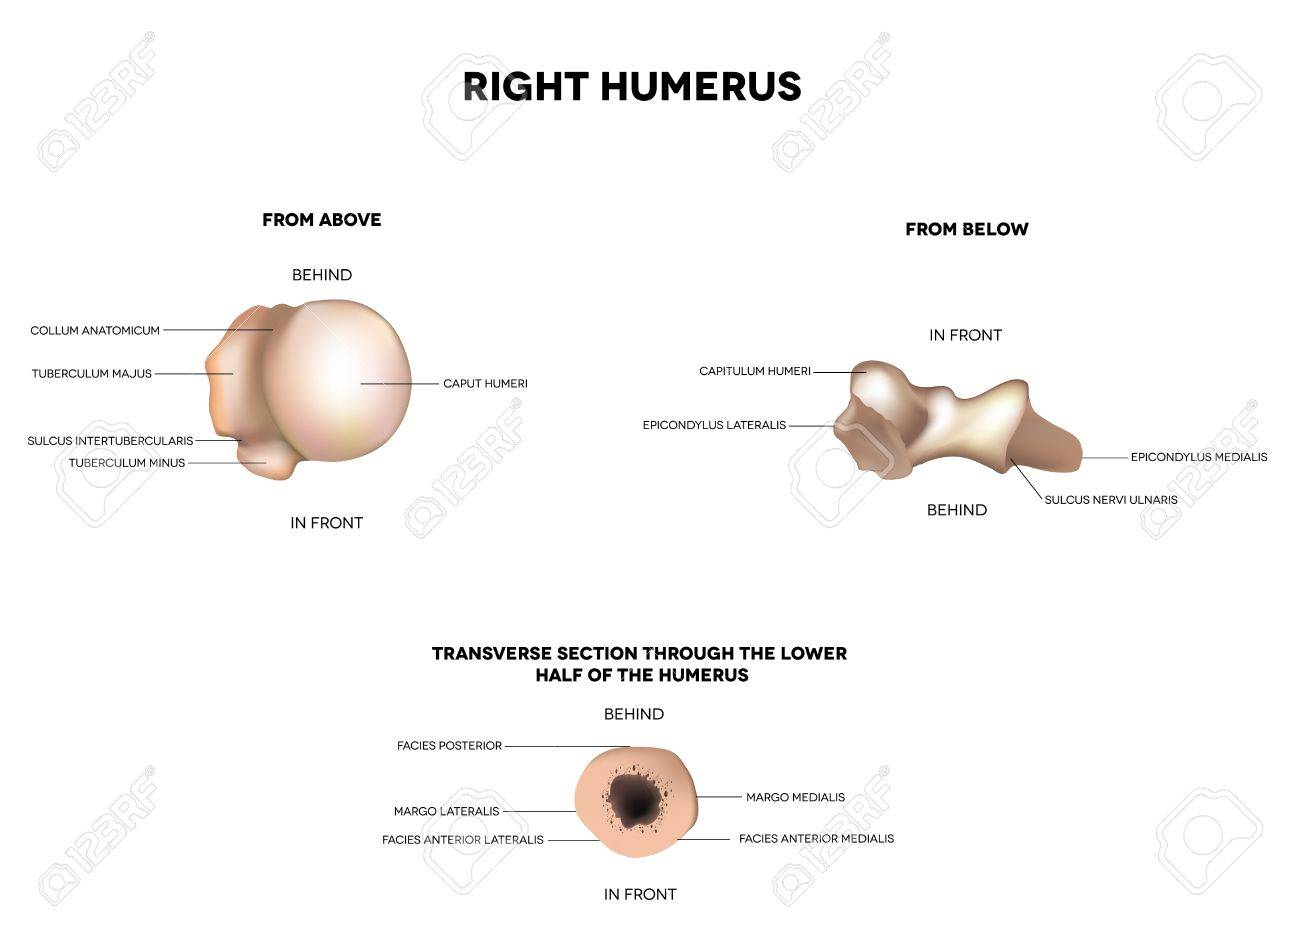 Humerus- upper arm bone, from above, from below and transverse section through of the lower half of the humerus   Detailed medical illustration  Latin medical terms  Isolated on a white background Stock Vector - 19354643